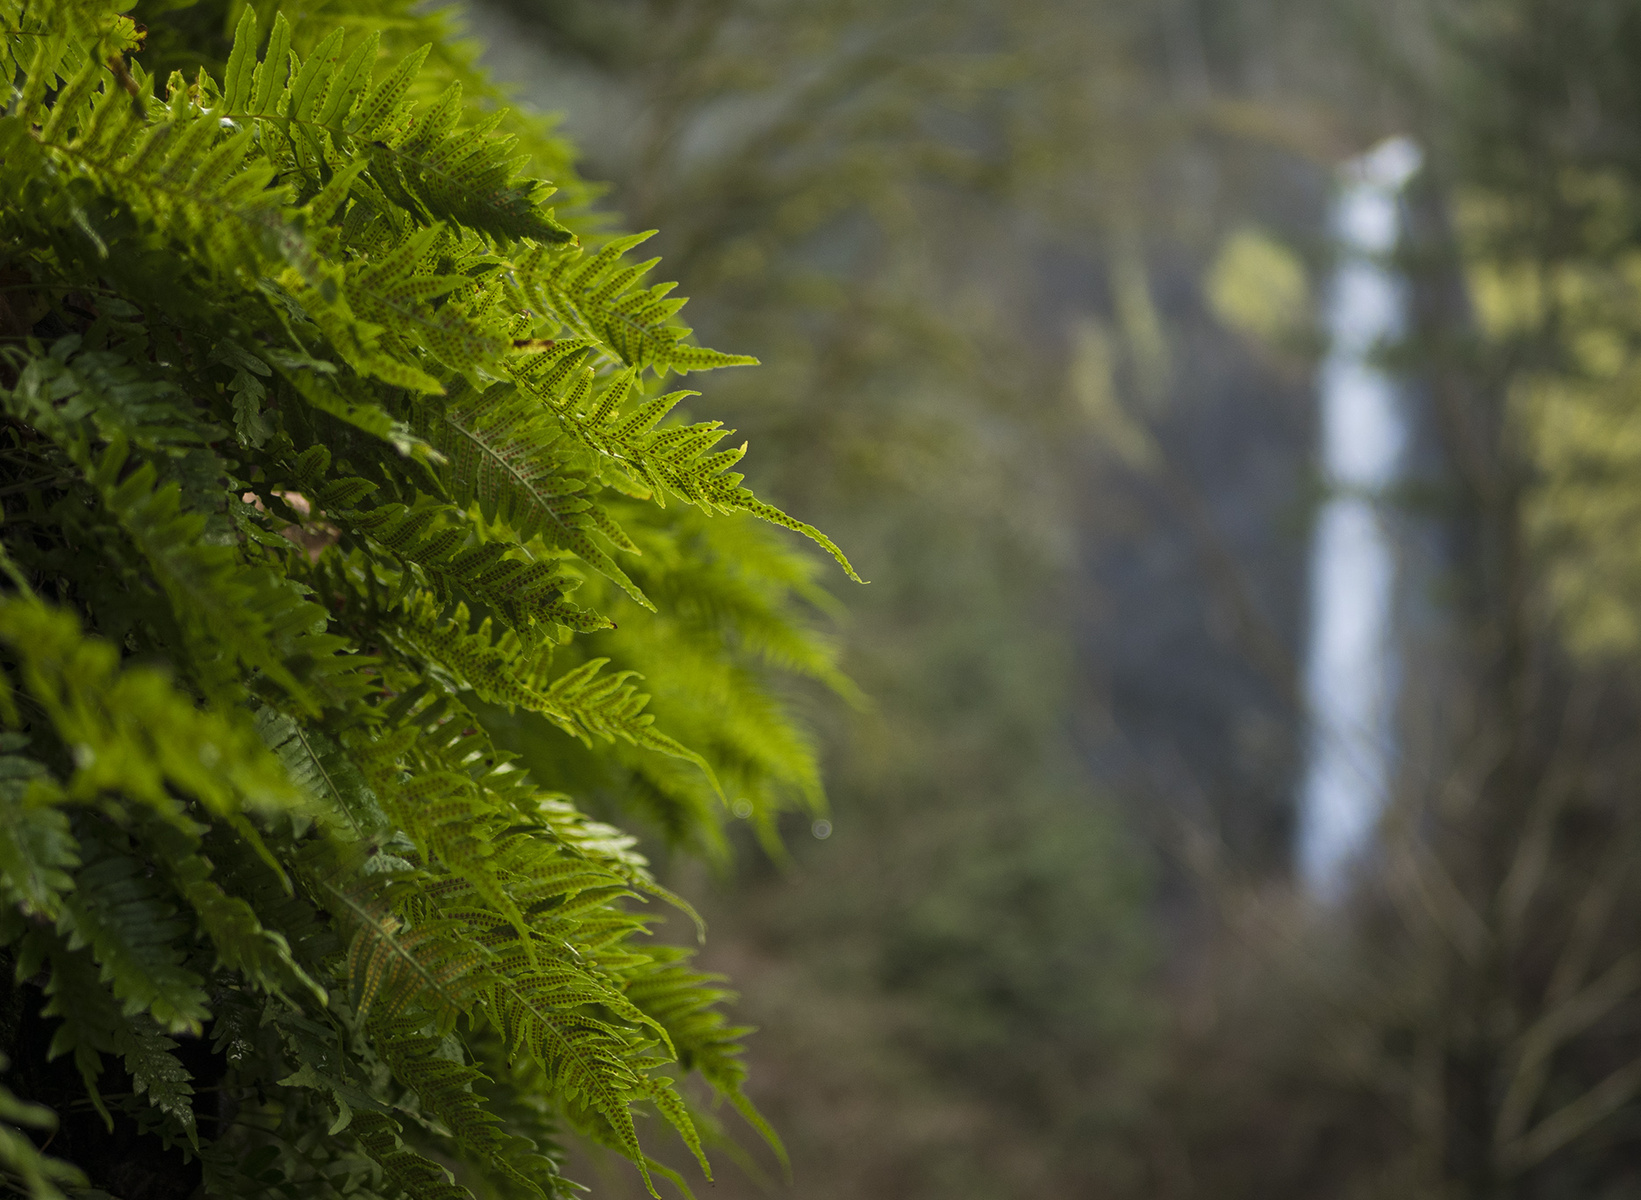 obscured by the ferns